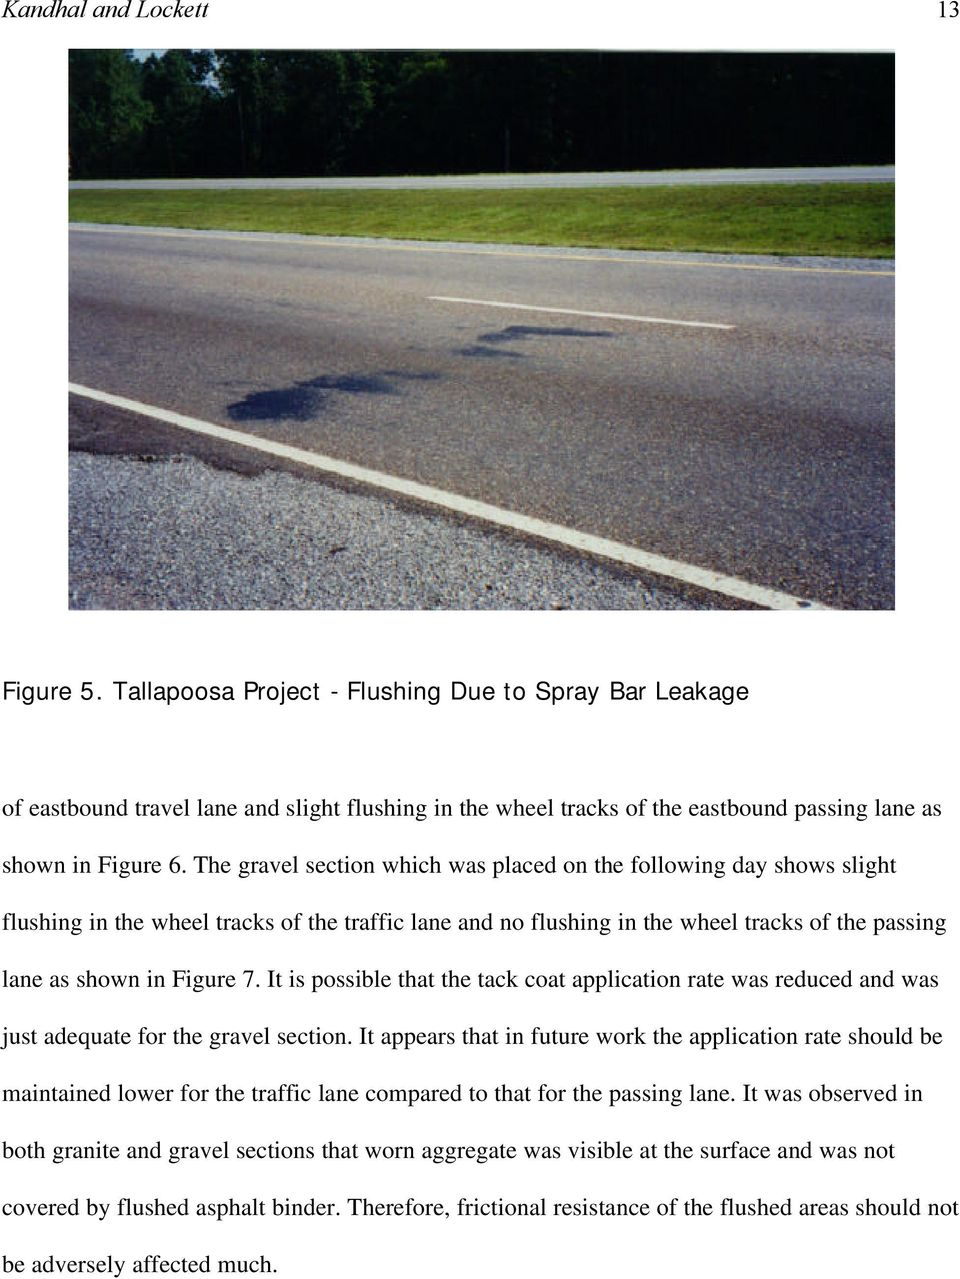 The gravel section which was placed on the following day shows slight flushing in the wheel tracks of the traffic lane and no flushing in the wheel tracks of the passing lane as shown in Figure 7.